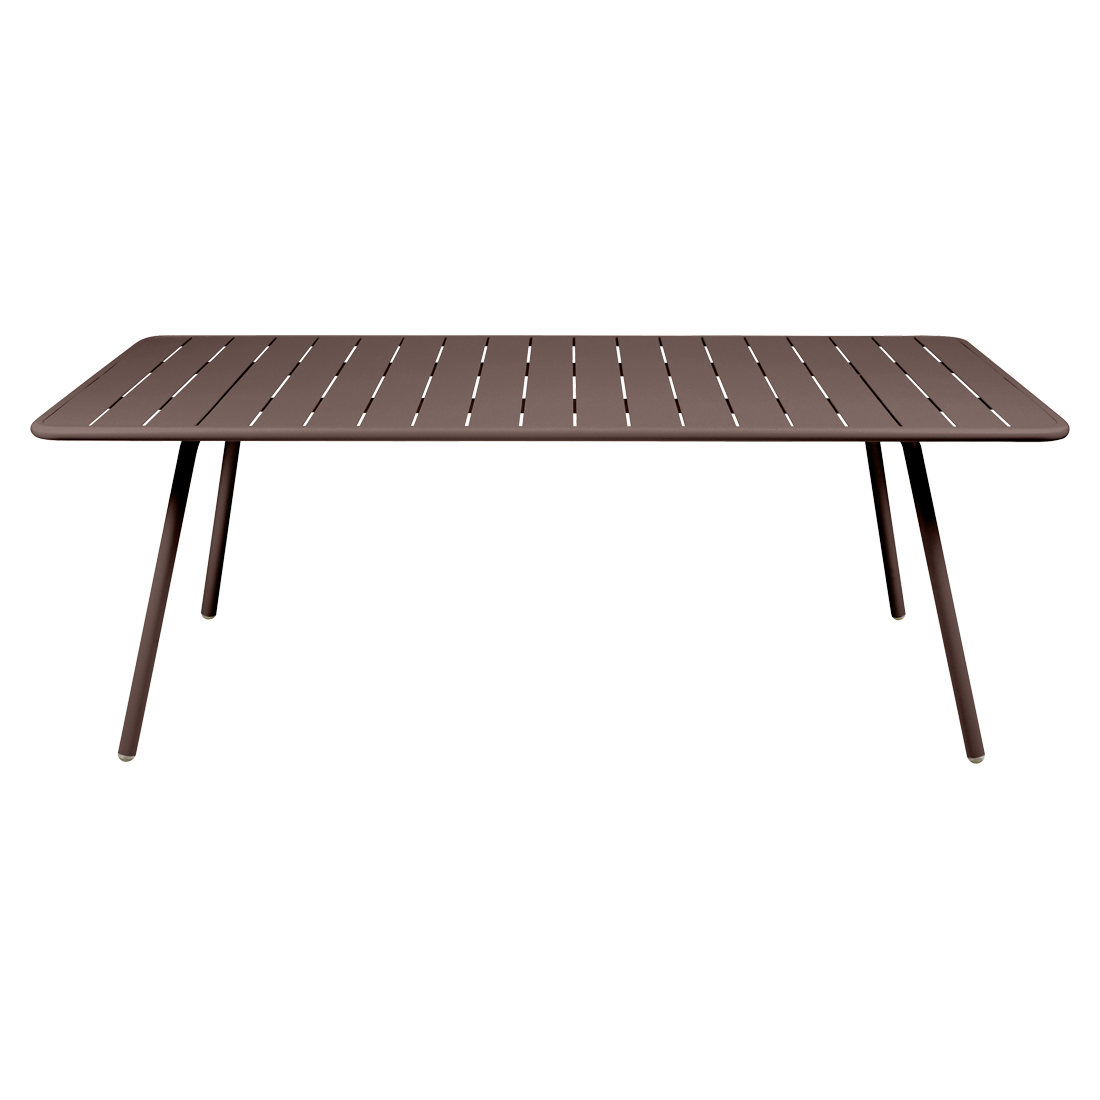 FERMOB Luxembourg 8-10 Seater Outdoor Dining Table